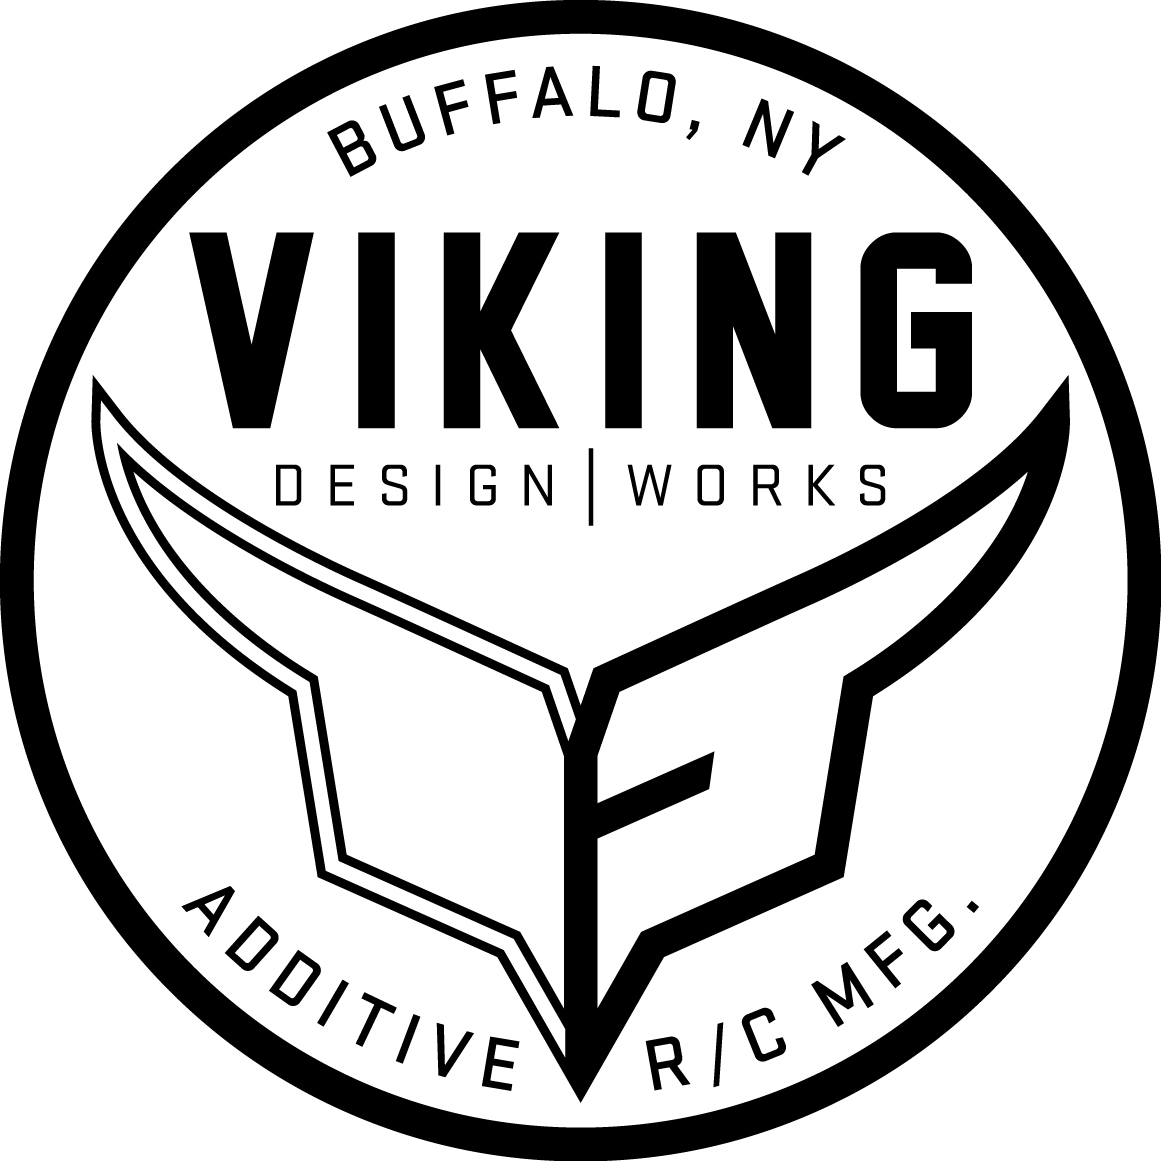 VIKING DESIGN | WORKS